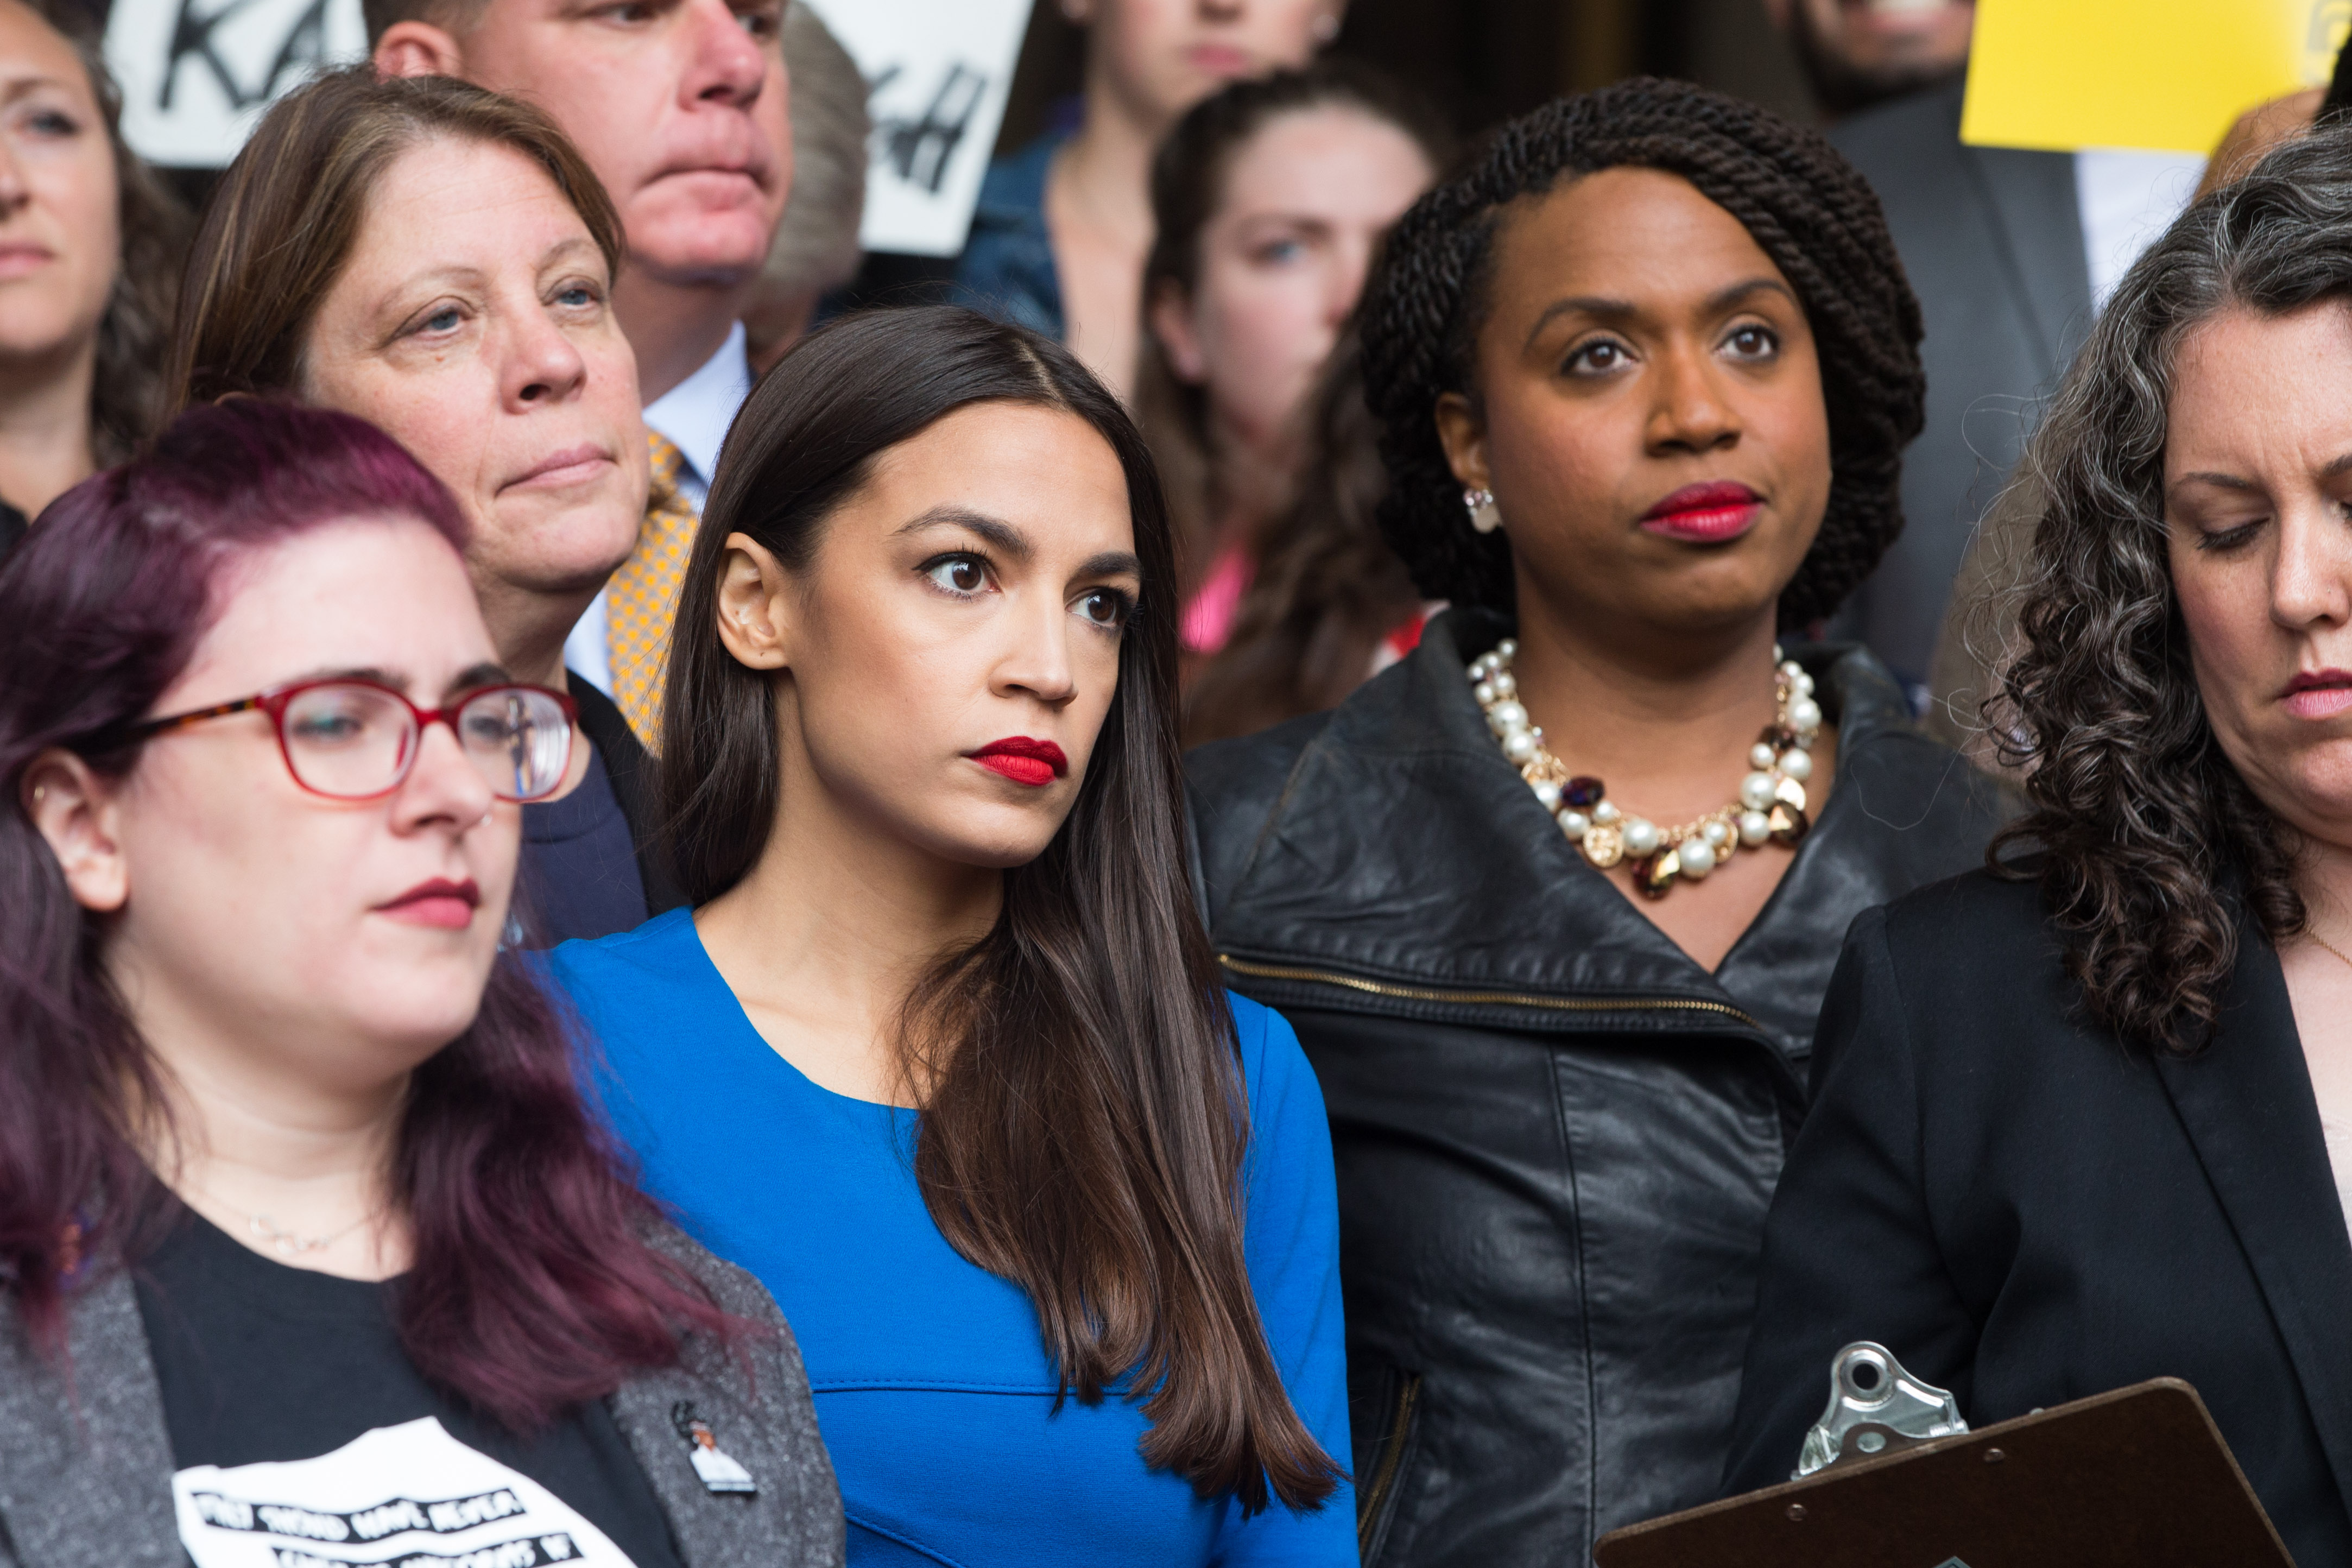 Alexandria Ocasio-Cortez is one of many reasons to care about the House committee that oversees banking